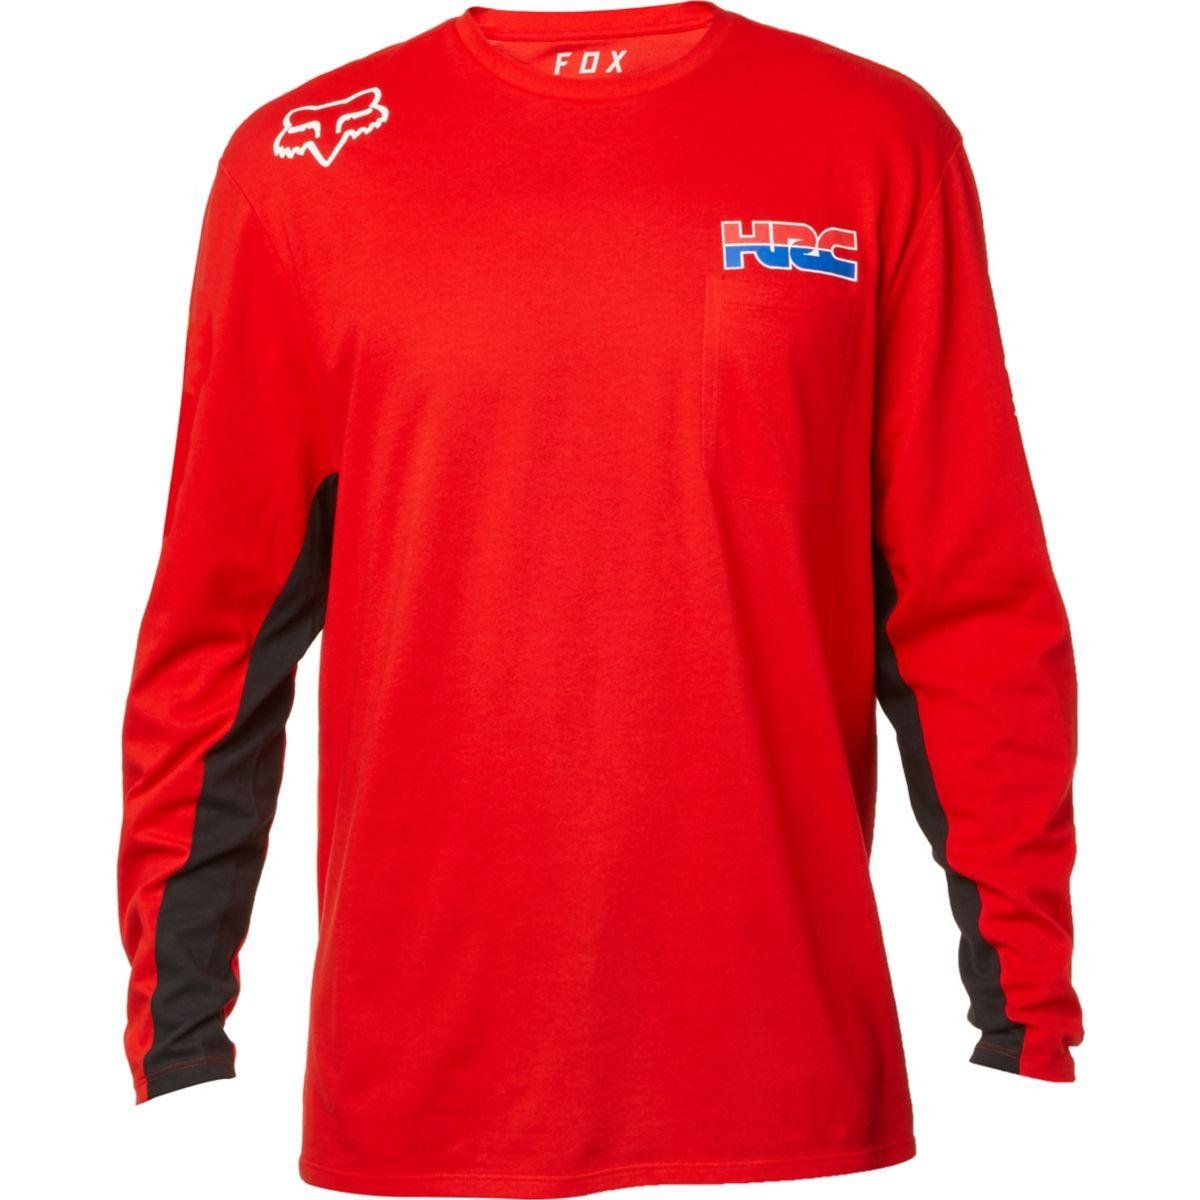 Amazoncom Fox Racing Redplate Hrc Honda Airline Mens Long Sleeve T